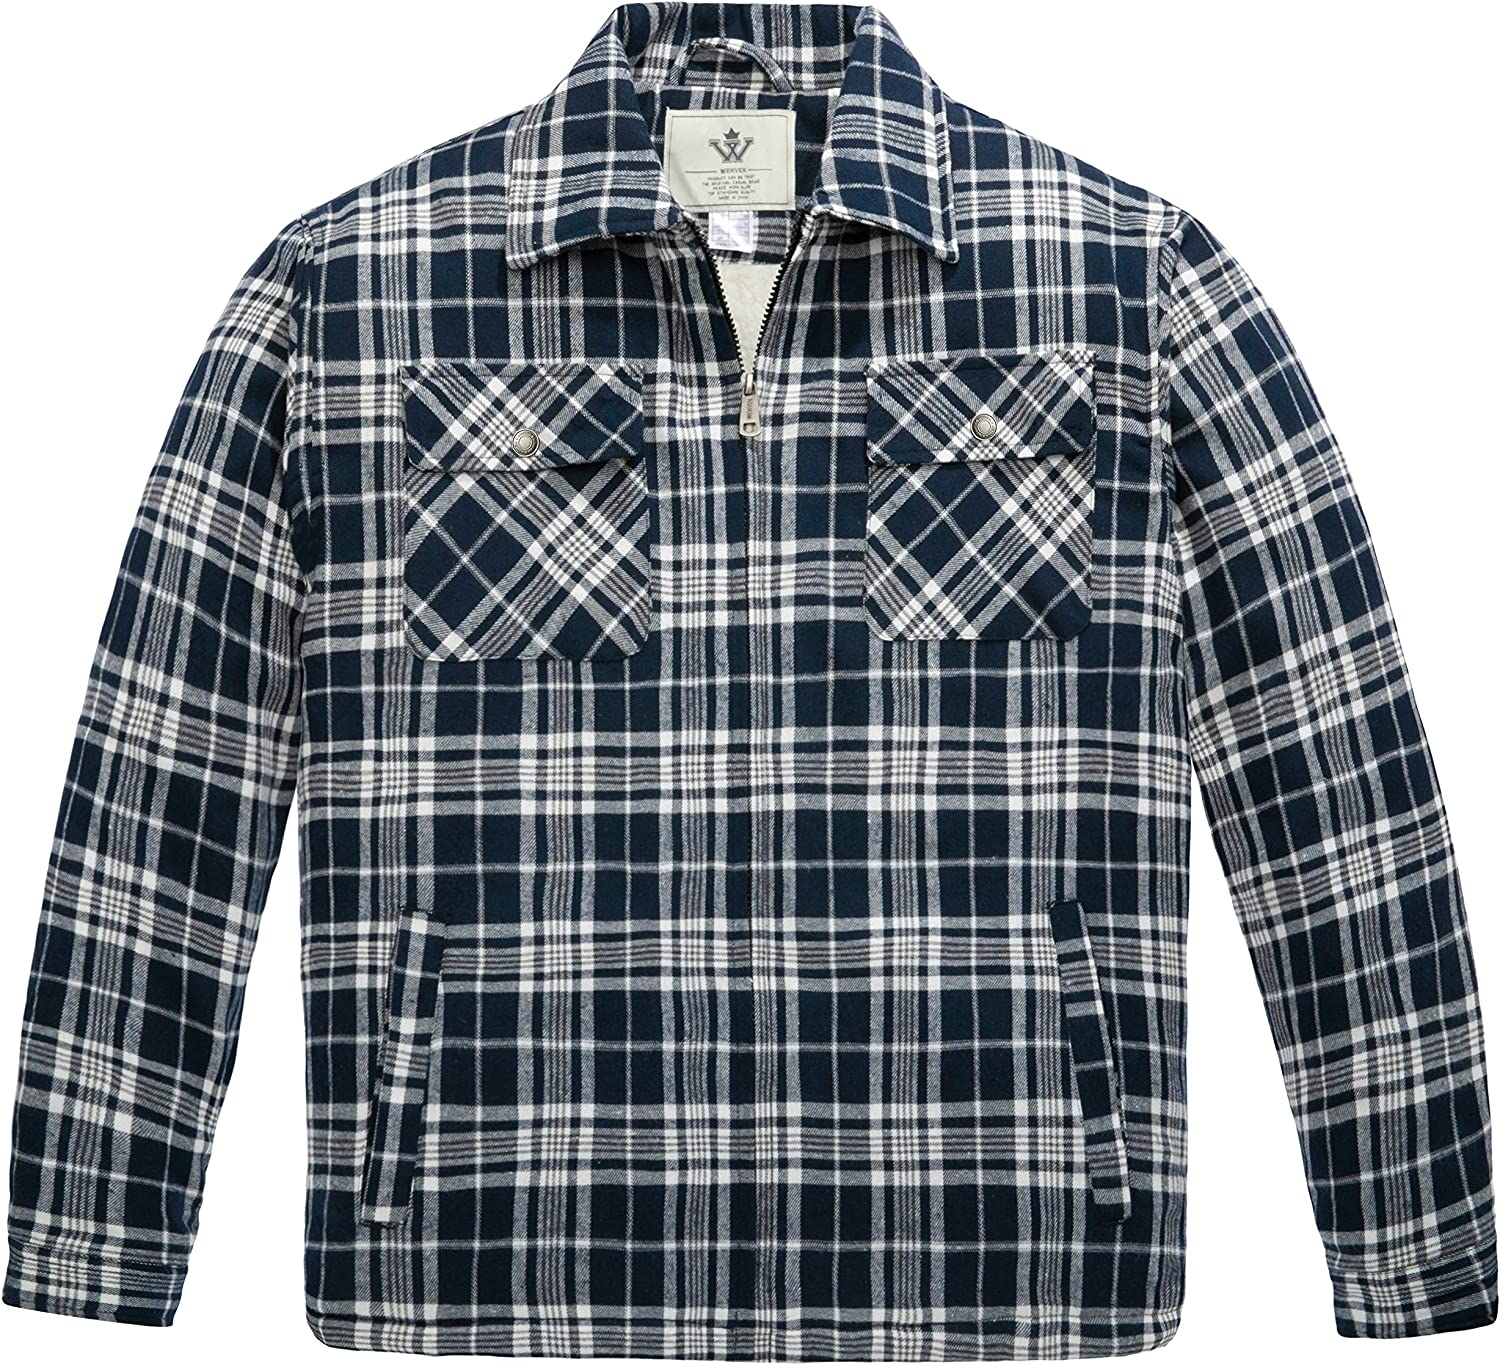 WenVen Men's Flannel Jacket Zip Ranking integrated 1st place Max 79% OFF Up Lined Sherpa Heavy Fleece Shi